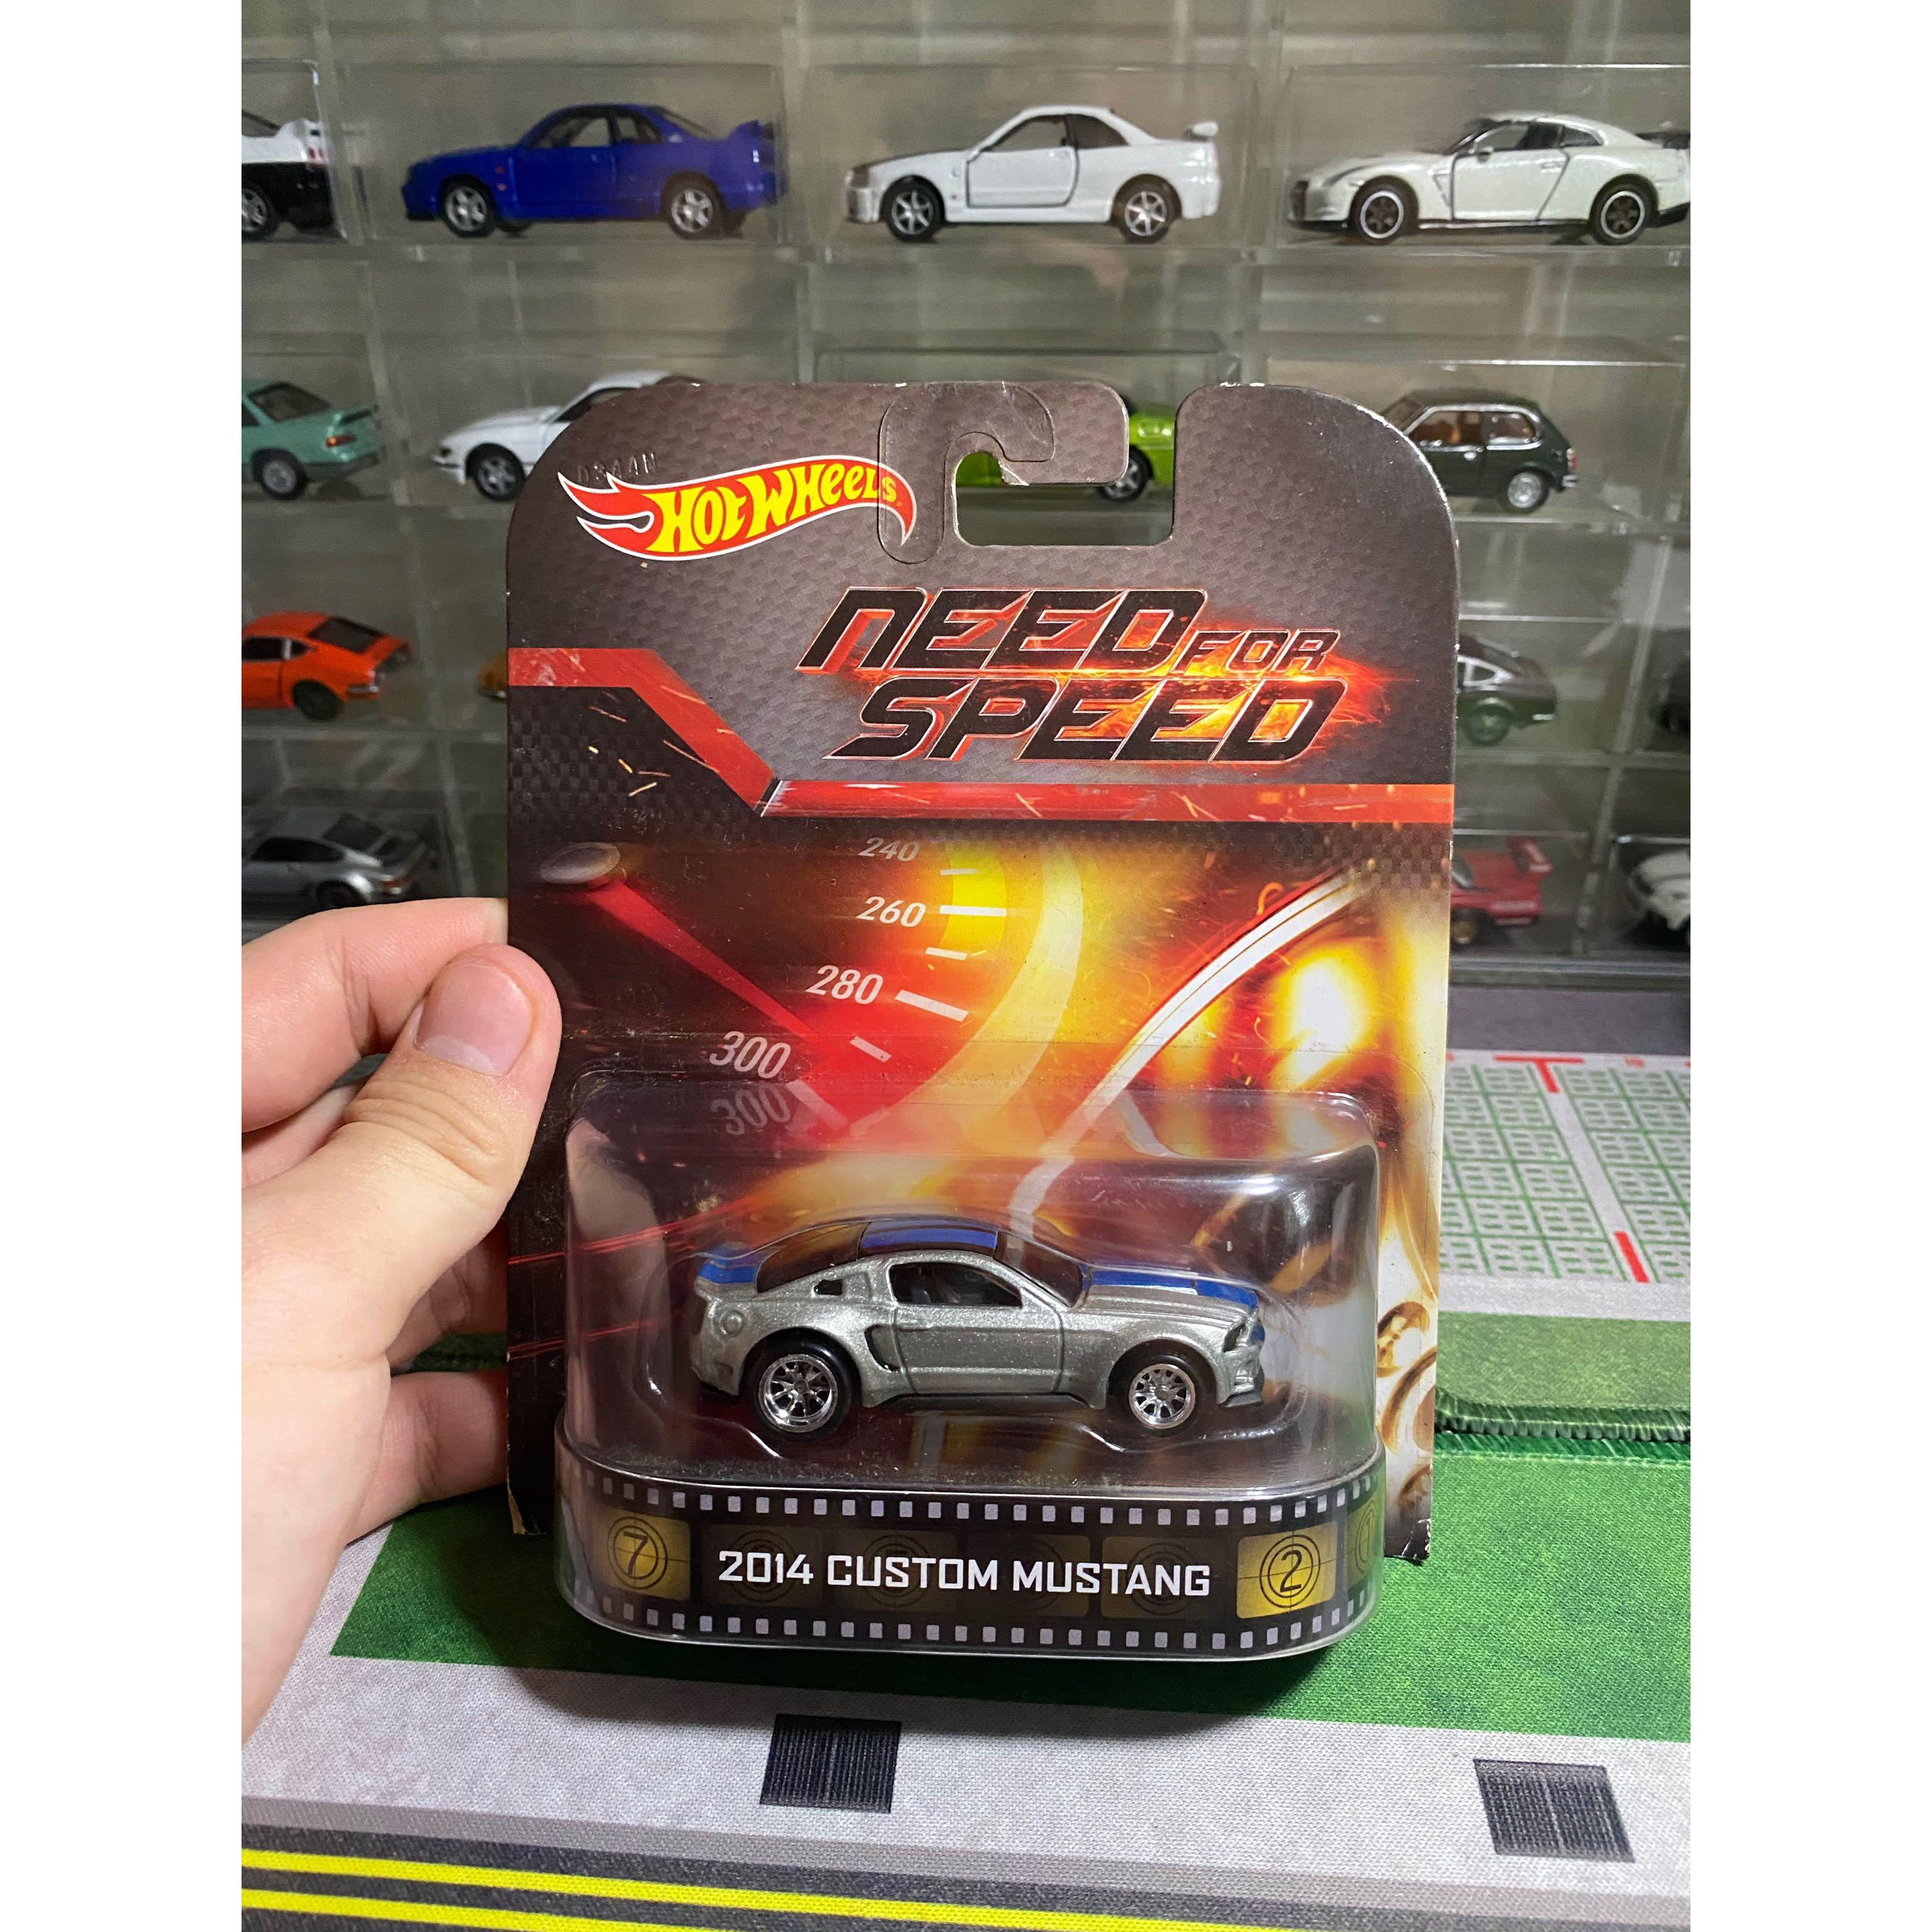 Hotwheels Custom Mustang Nfs Movie Series Toys Games Others On Carousell